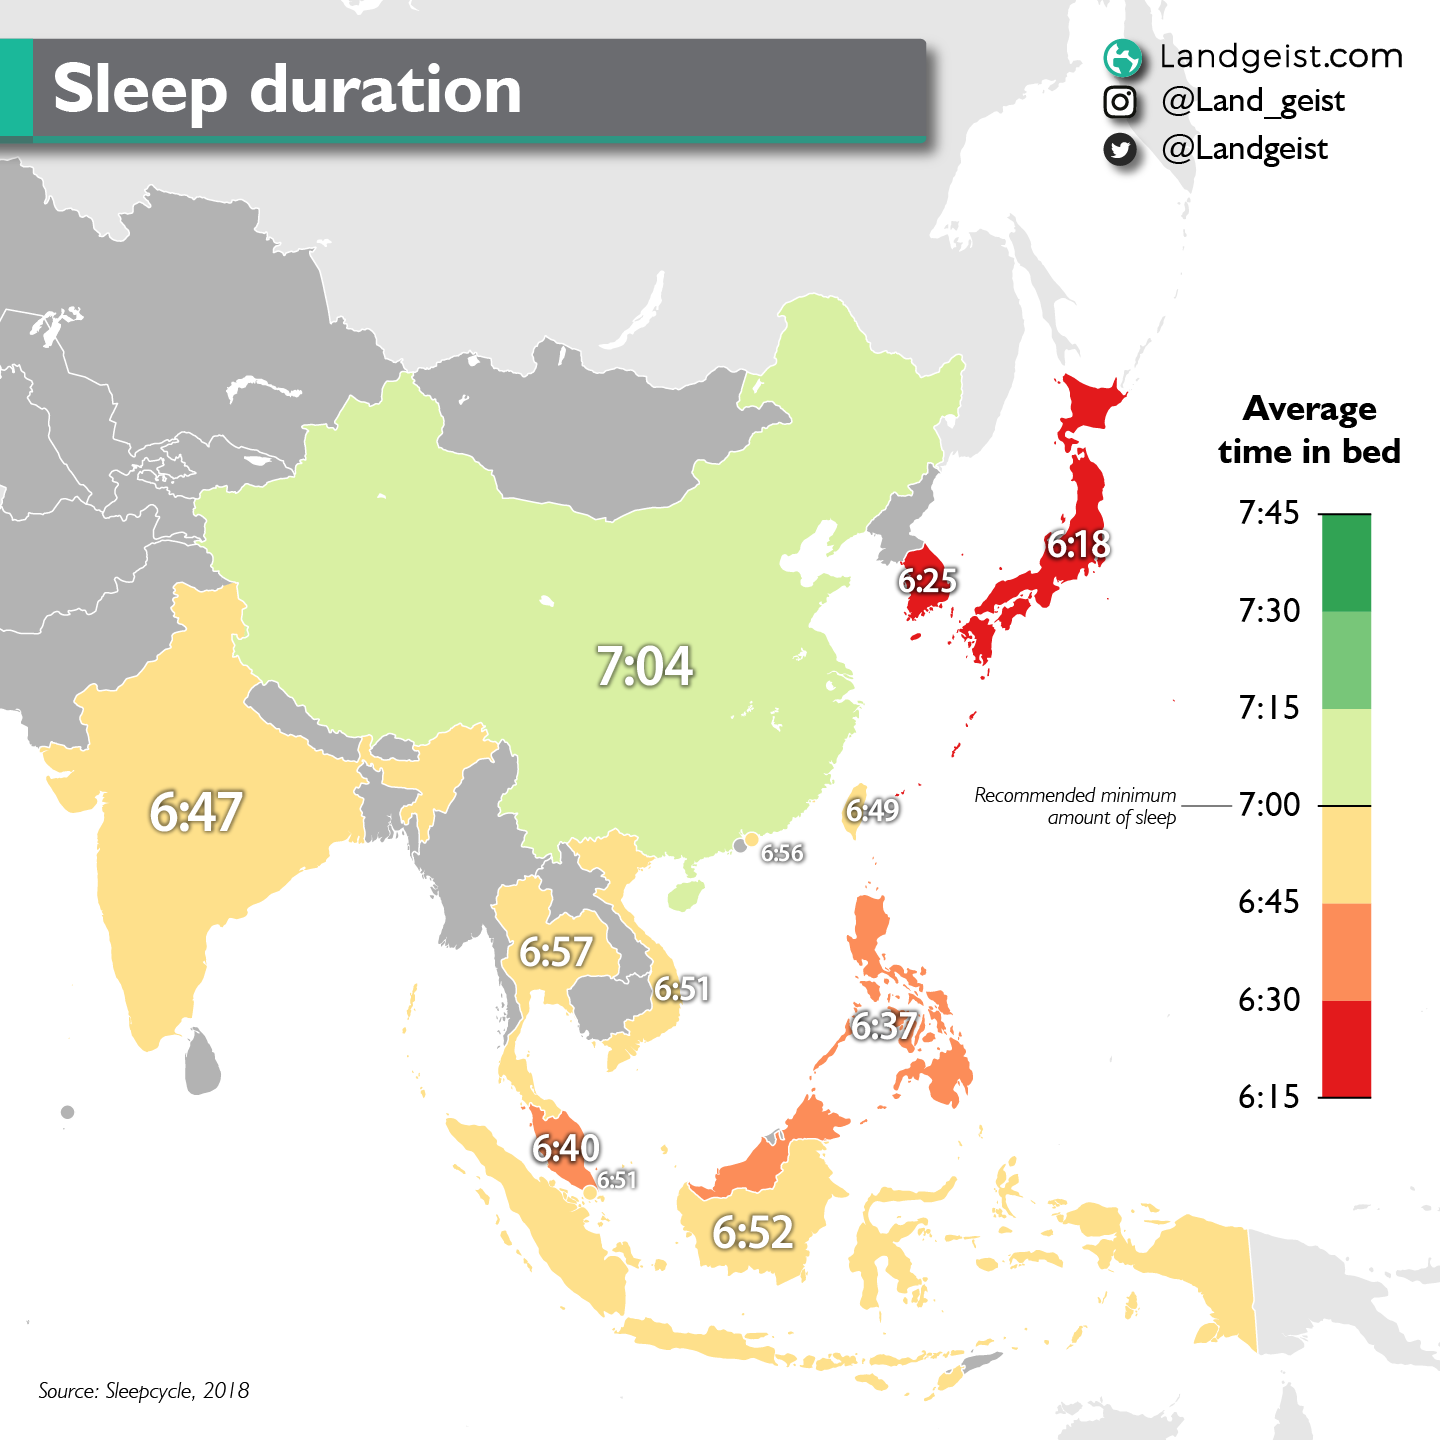 Average duration of sleep in Asia per country.